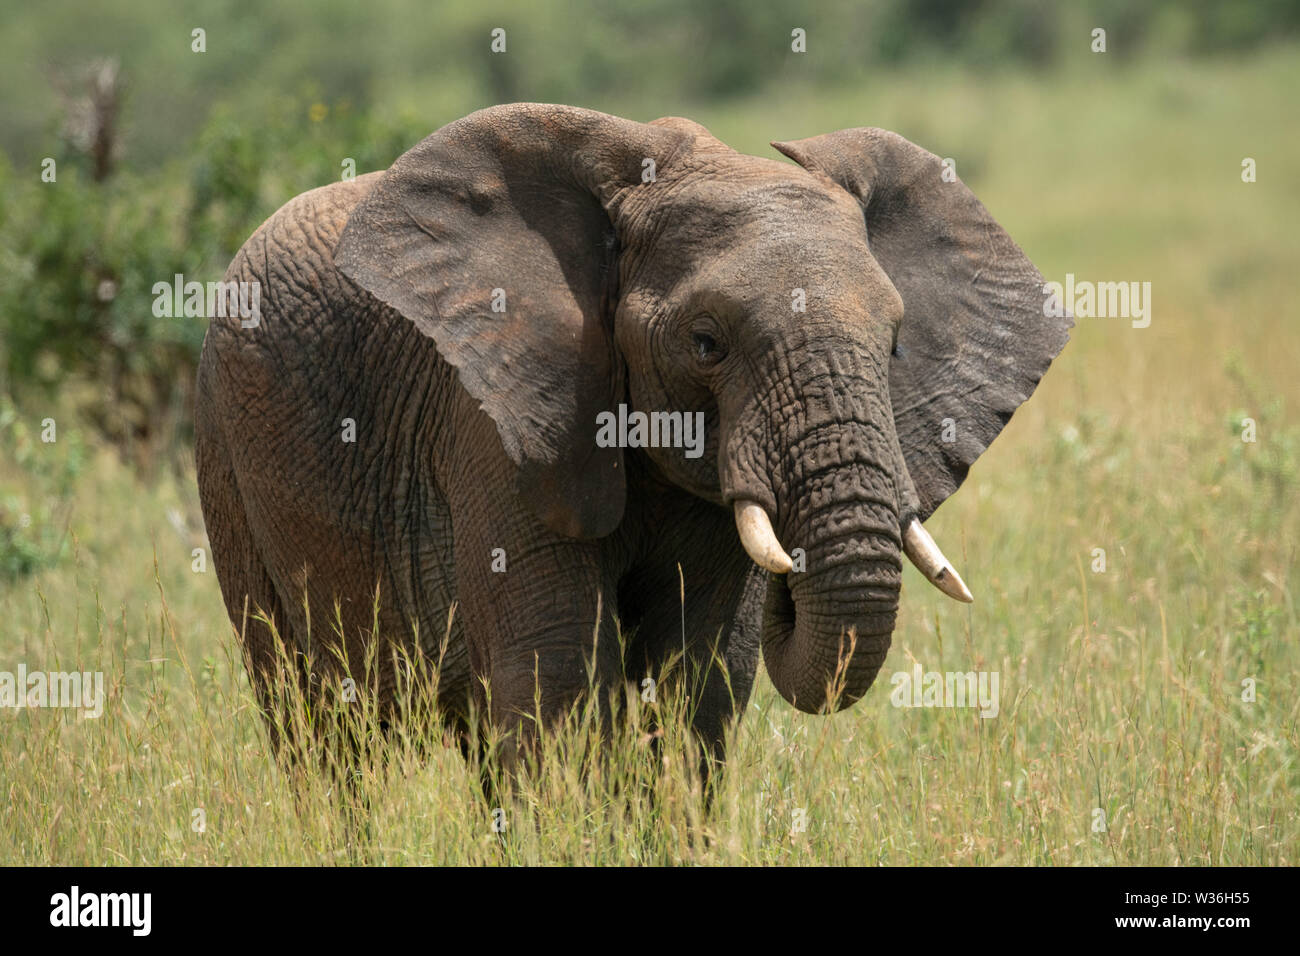 African elephant with chipped tusk in grass - Stock Image